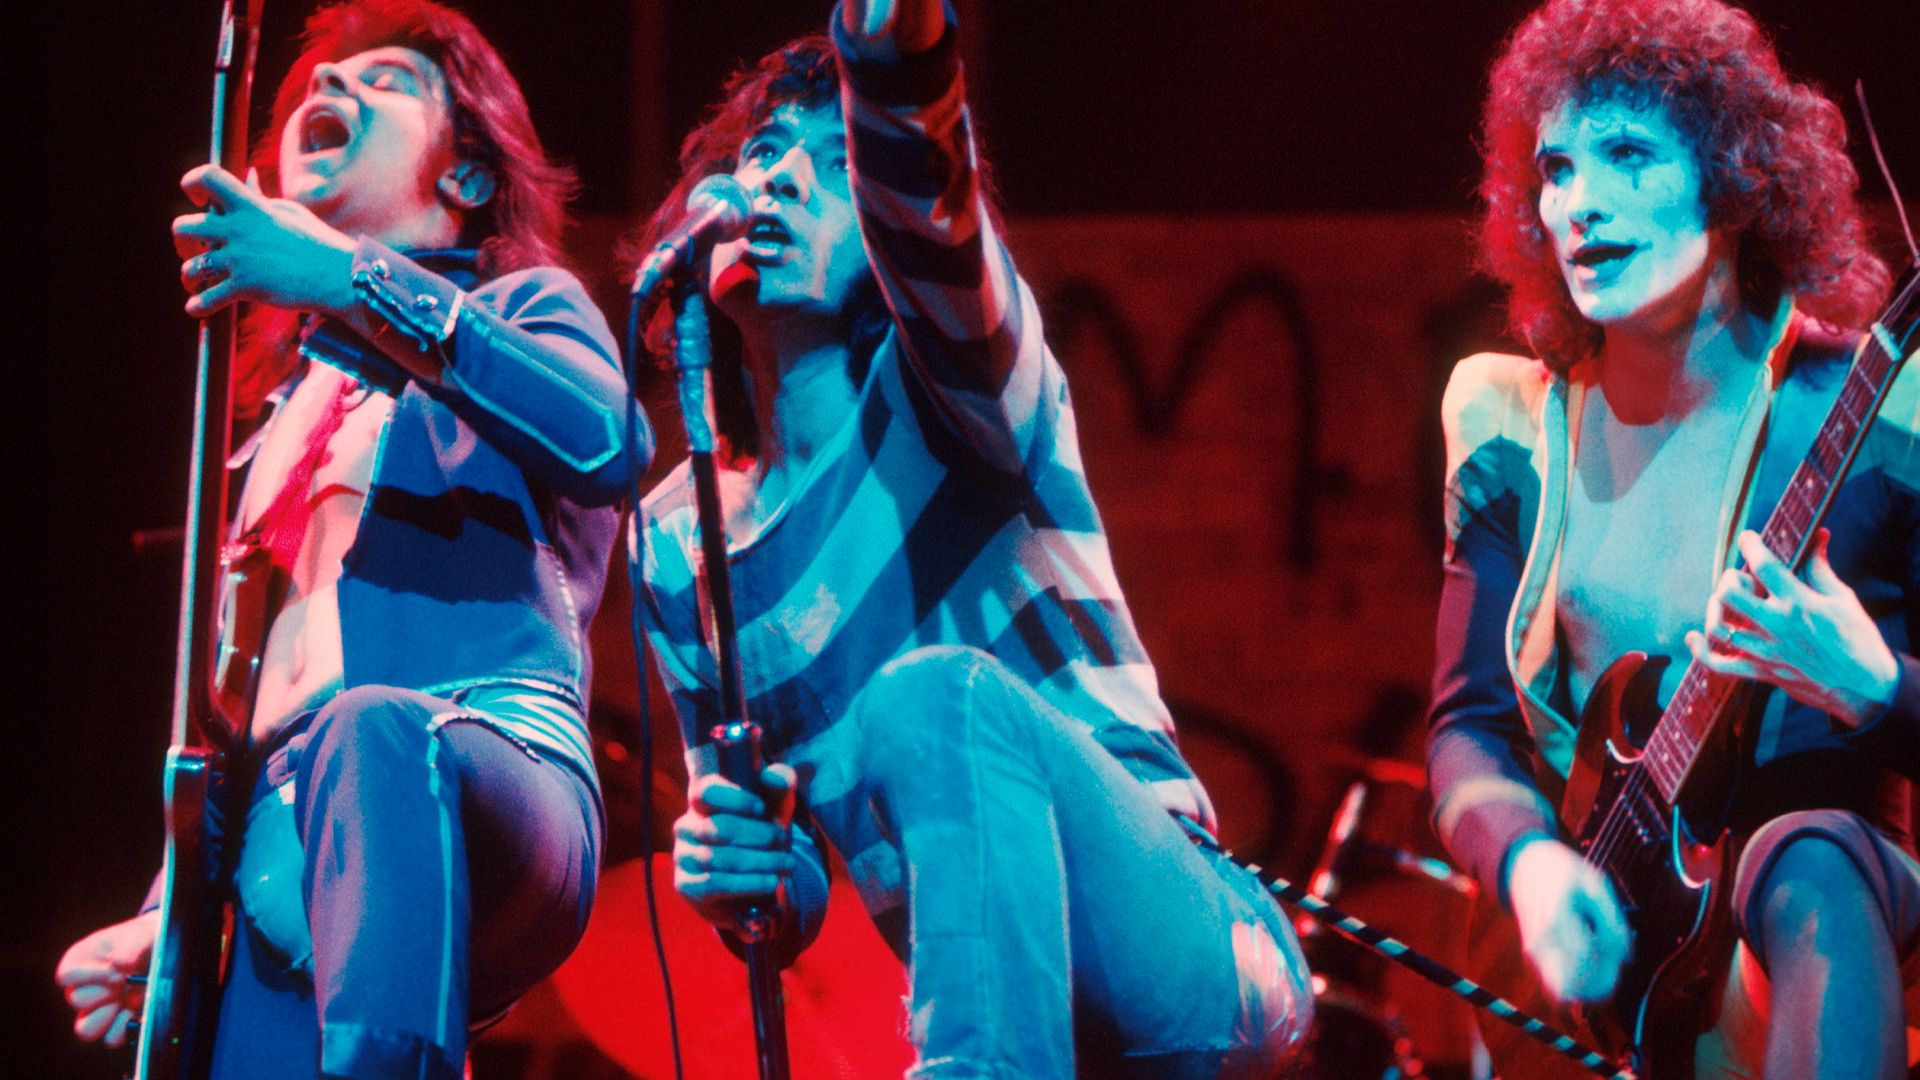 The Sensational Alex Harvey Band perform on stage in 1975. From left to right: Chris Glen, Alex Harvey, Zal Cleminson - Credit: Getty Images